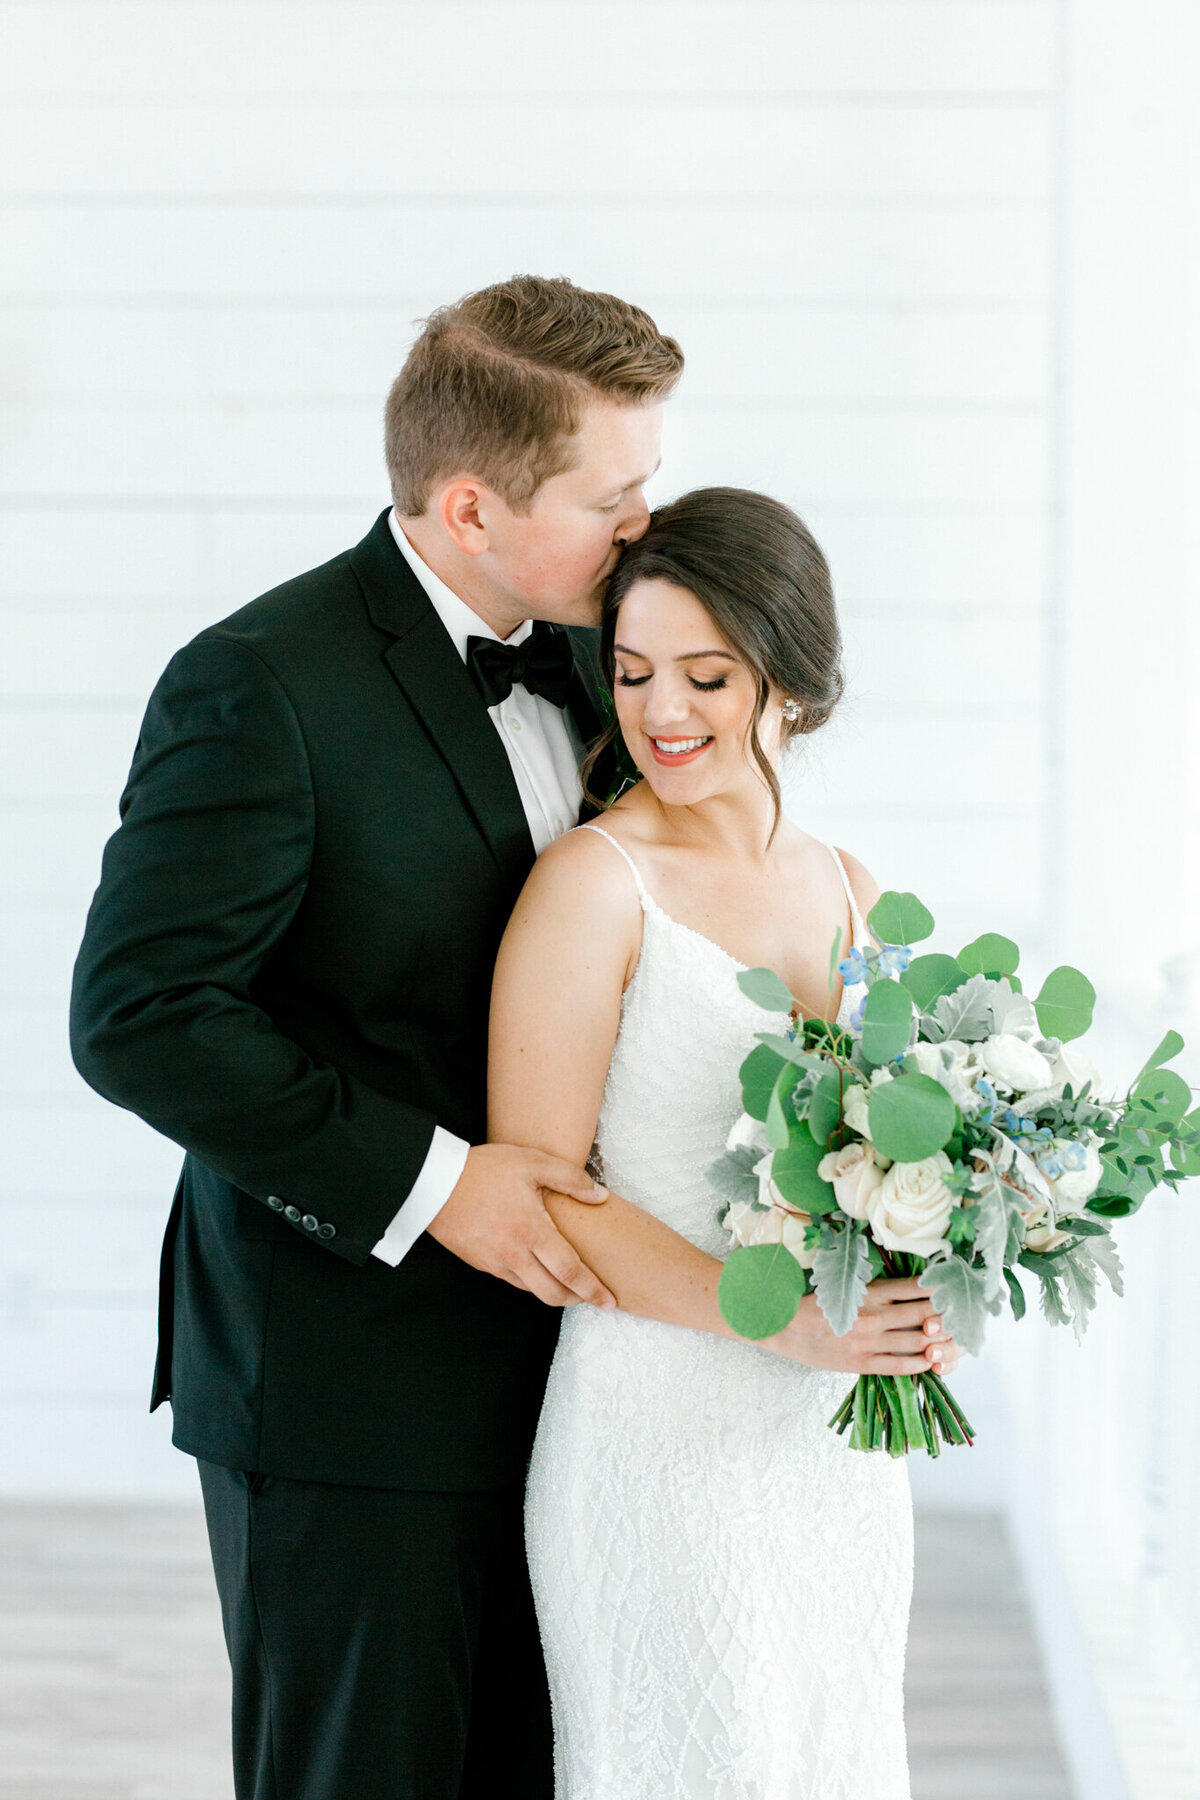 Anna & Billy's Wedding at The Nest at Ruth Farms | Dallas Wedding Photographer | Sami Kathryn Photography-106